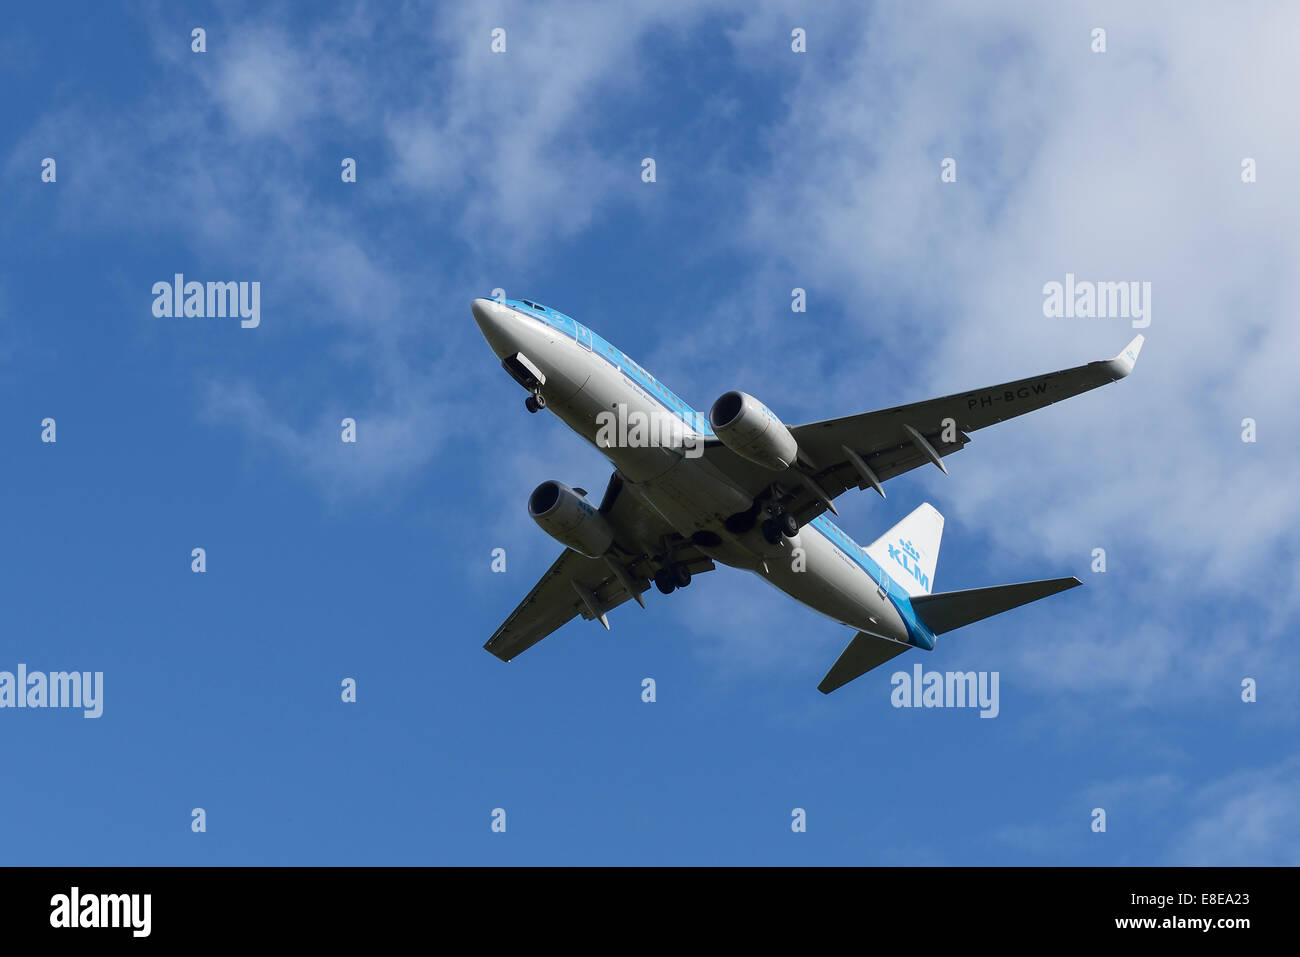 Royal Dutch Airlines KLM Boeing 737 aircraft on the final approach to Manchester Airport UK - Stock Image